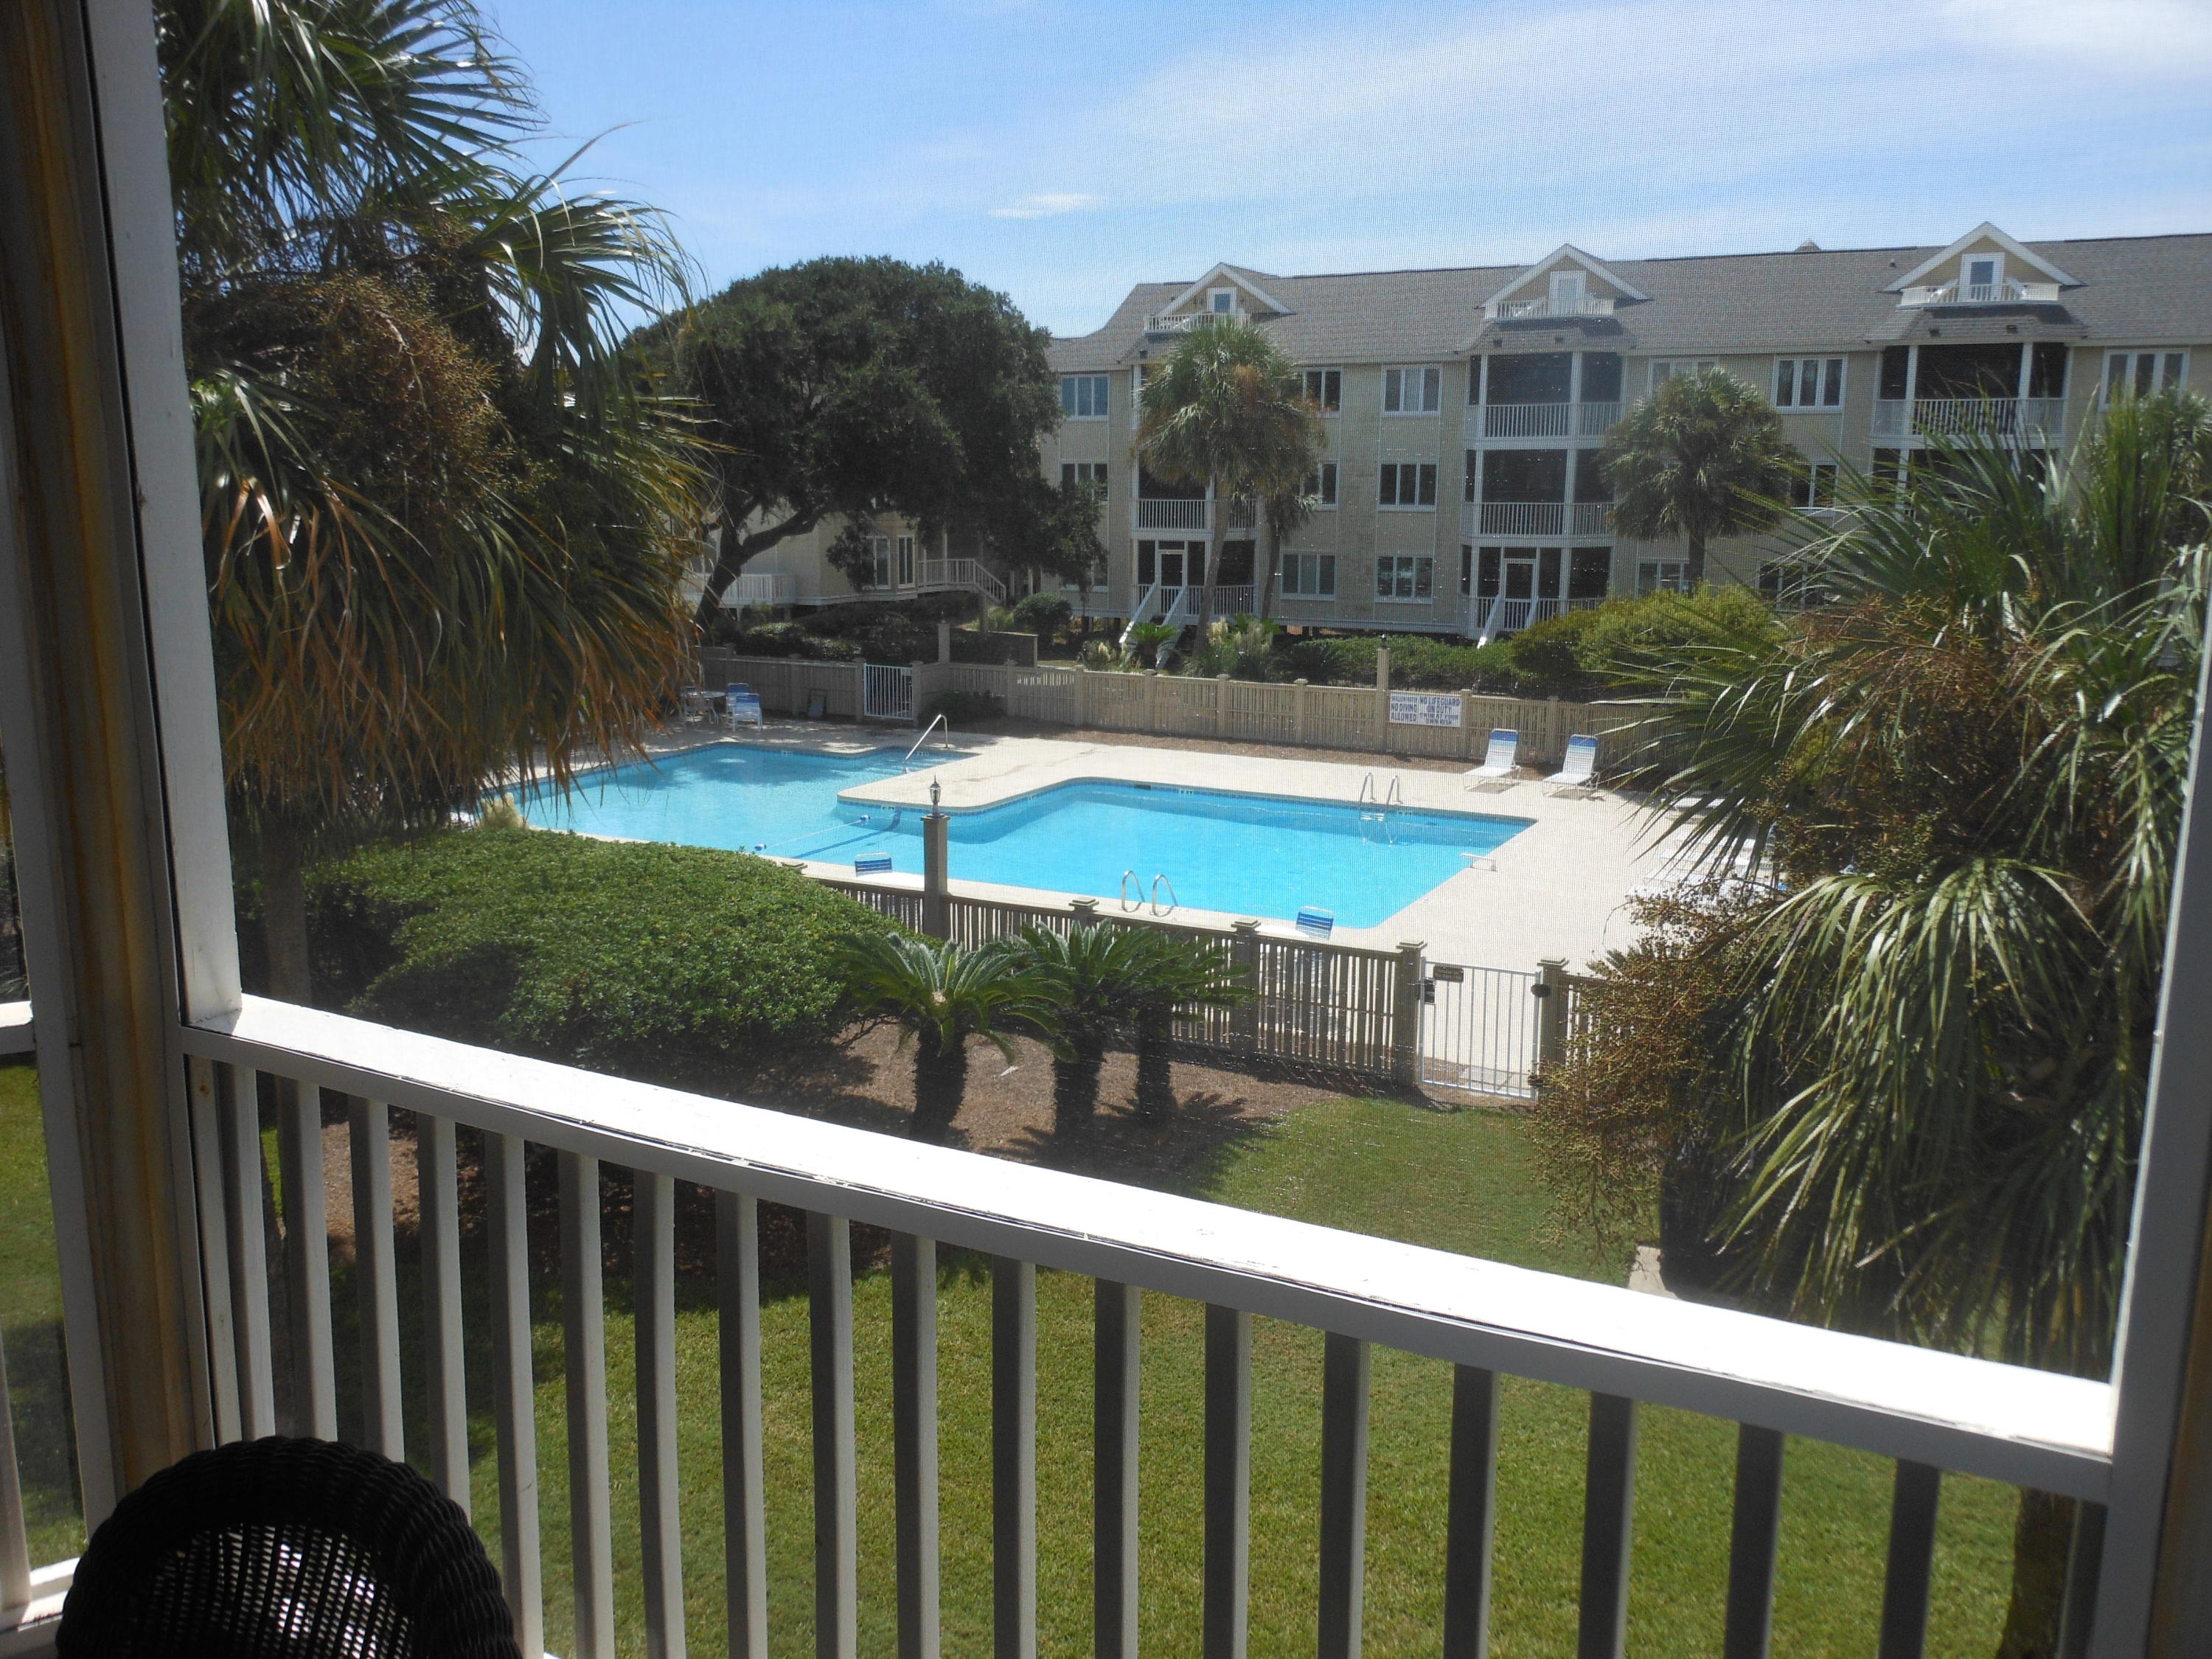 Wild Dunes Homes For Sale - 202 Port O Call, Isle of Palms, SC - 29